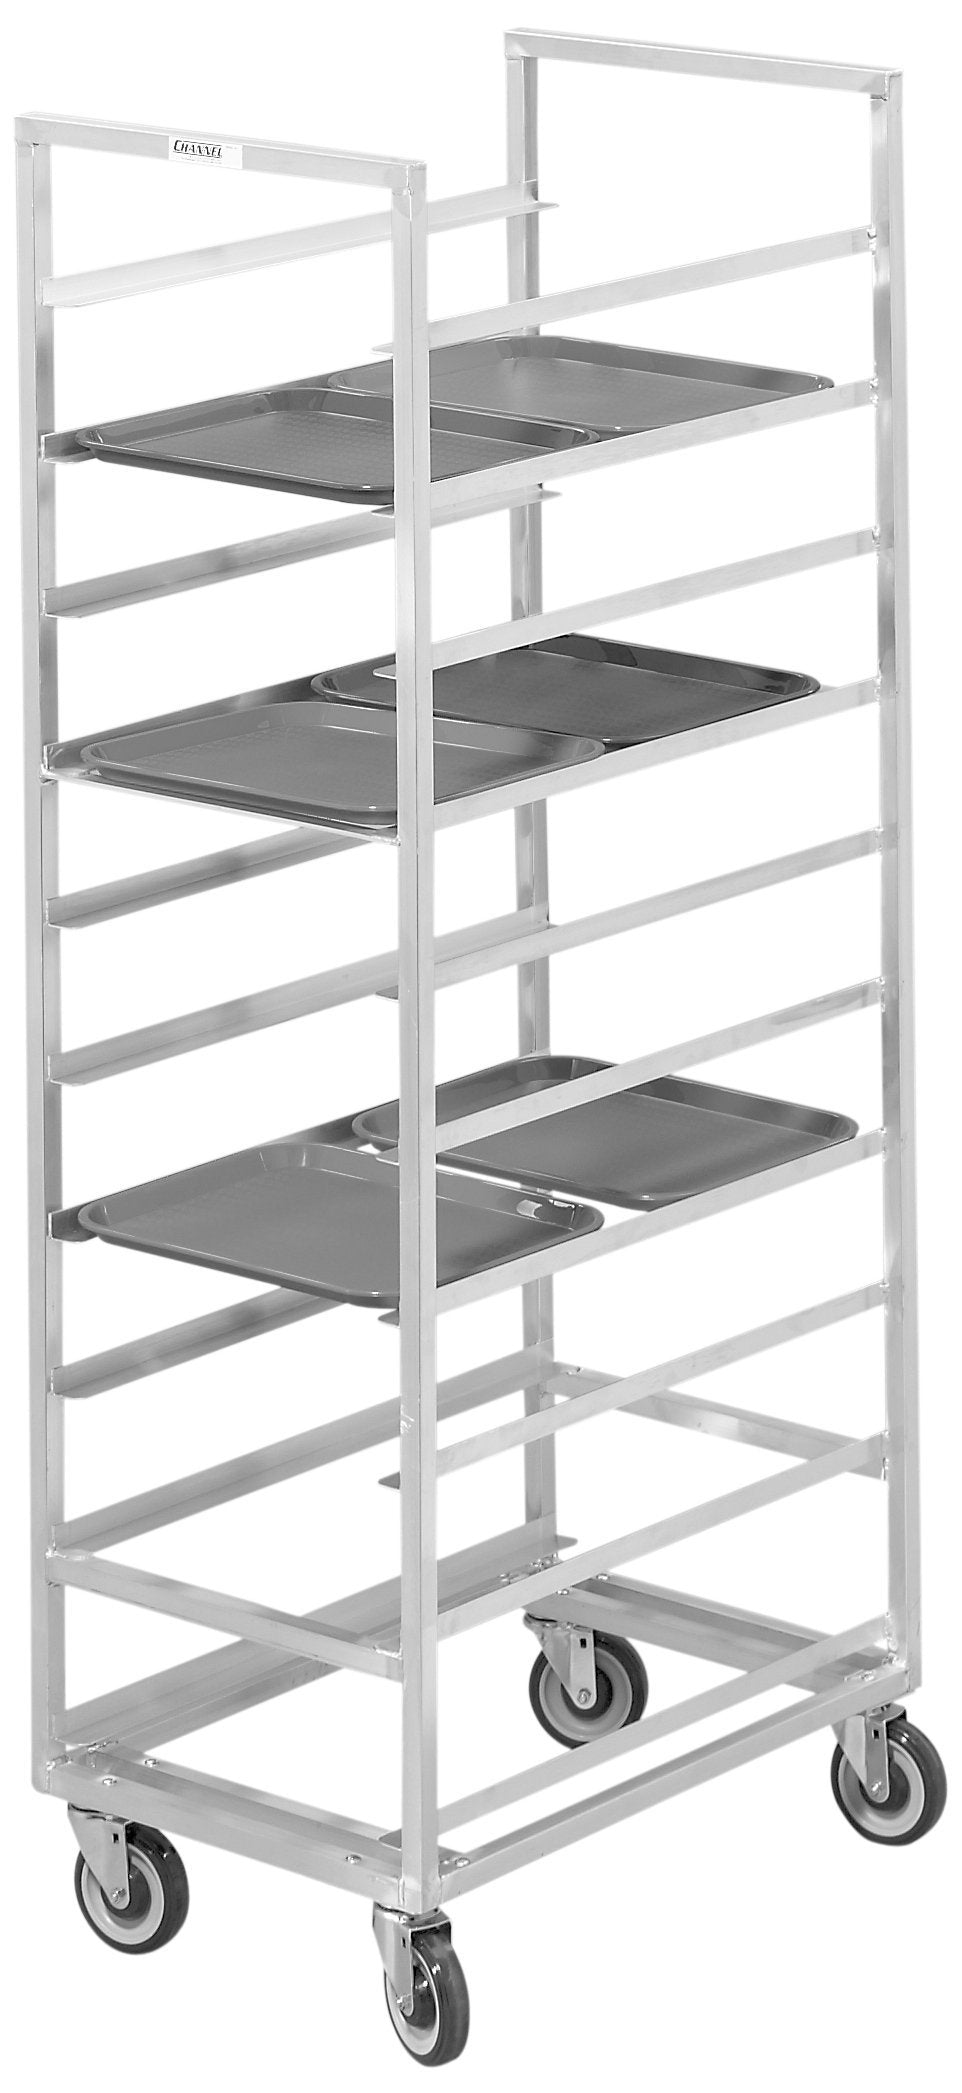 Channel Manufacturing 448A 20 Tray Bottom Load Aluminum Cafeteria Tray Rack - Assembled